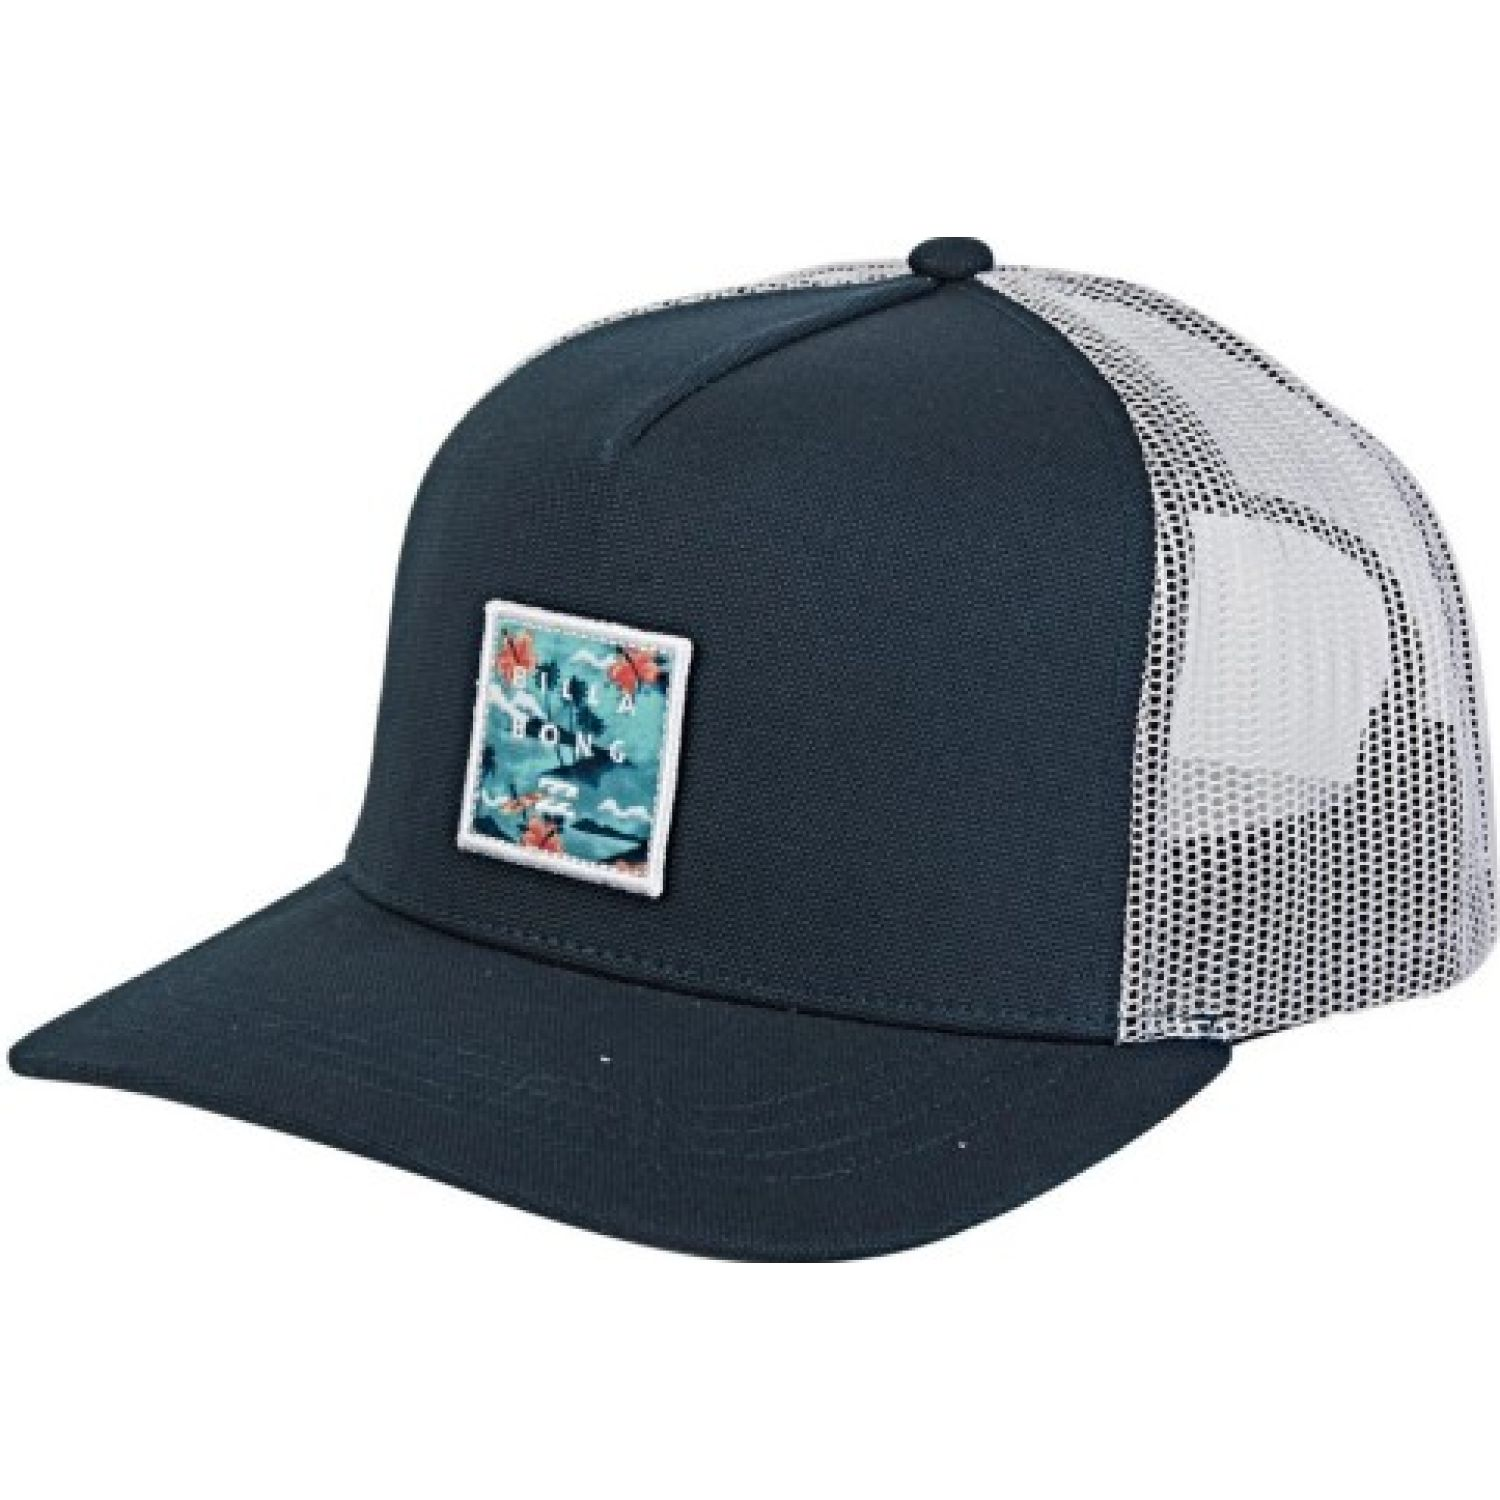 Billabong Stacked Trucker Negro Gorras de béisbol